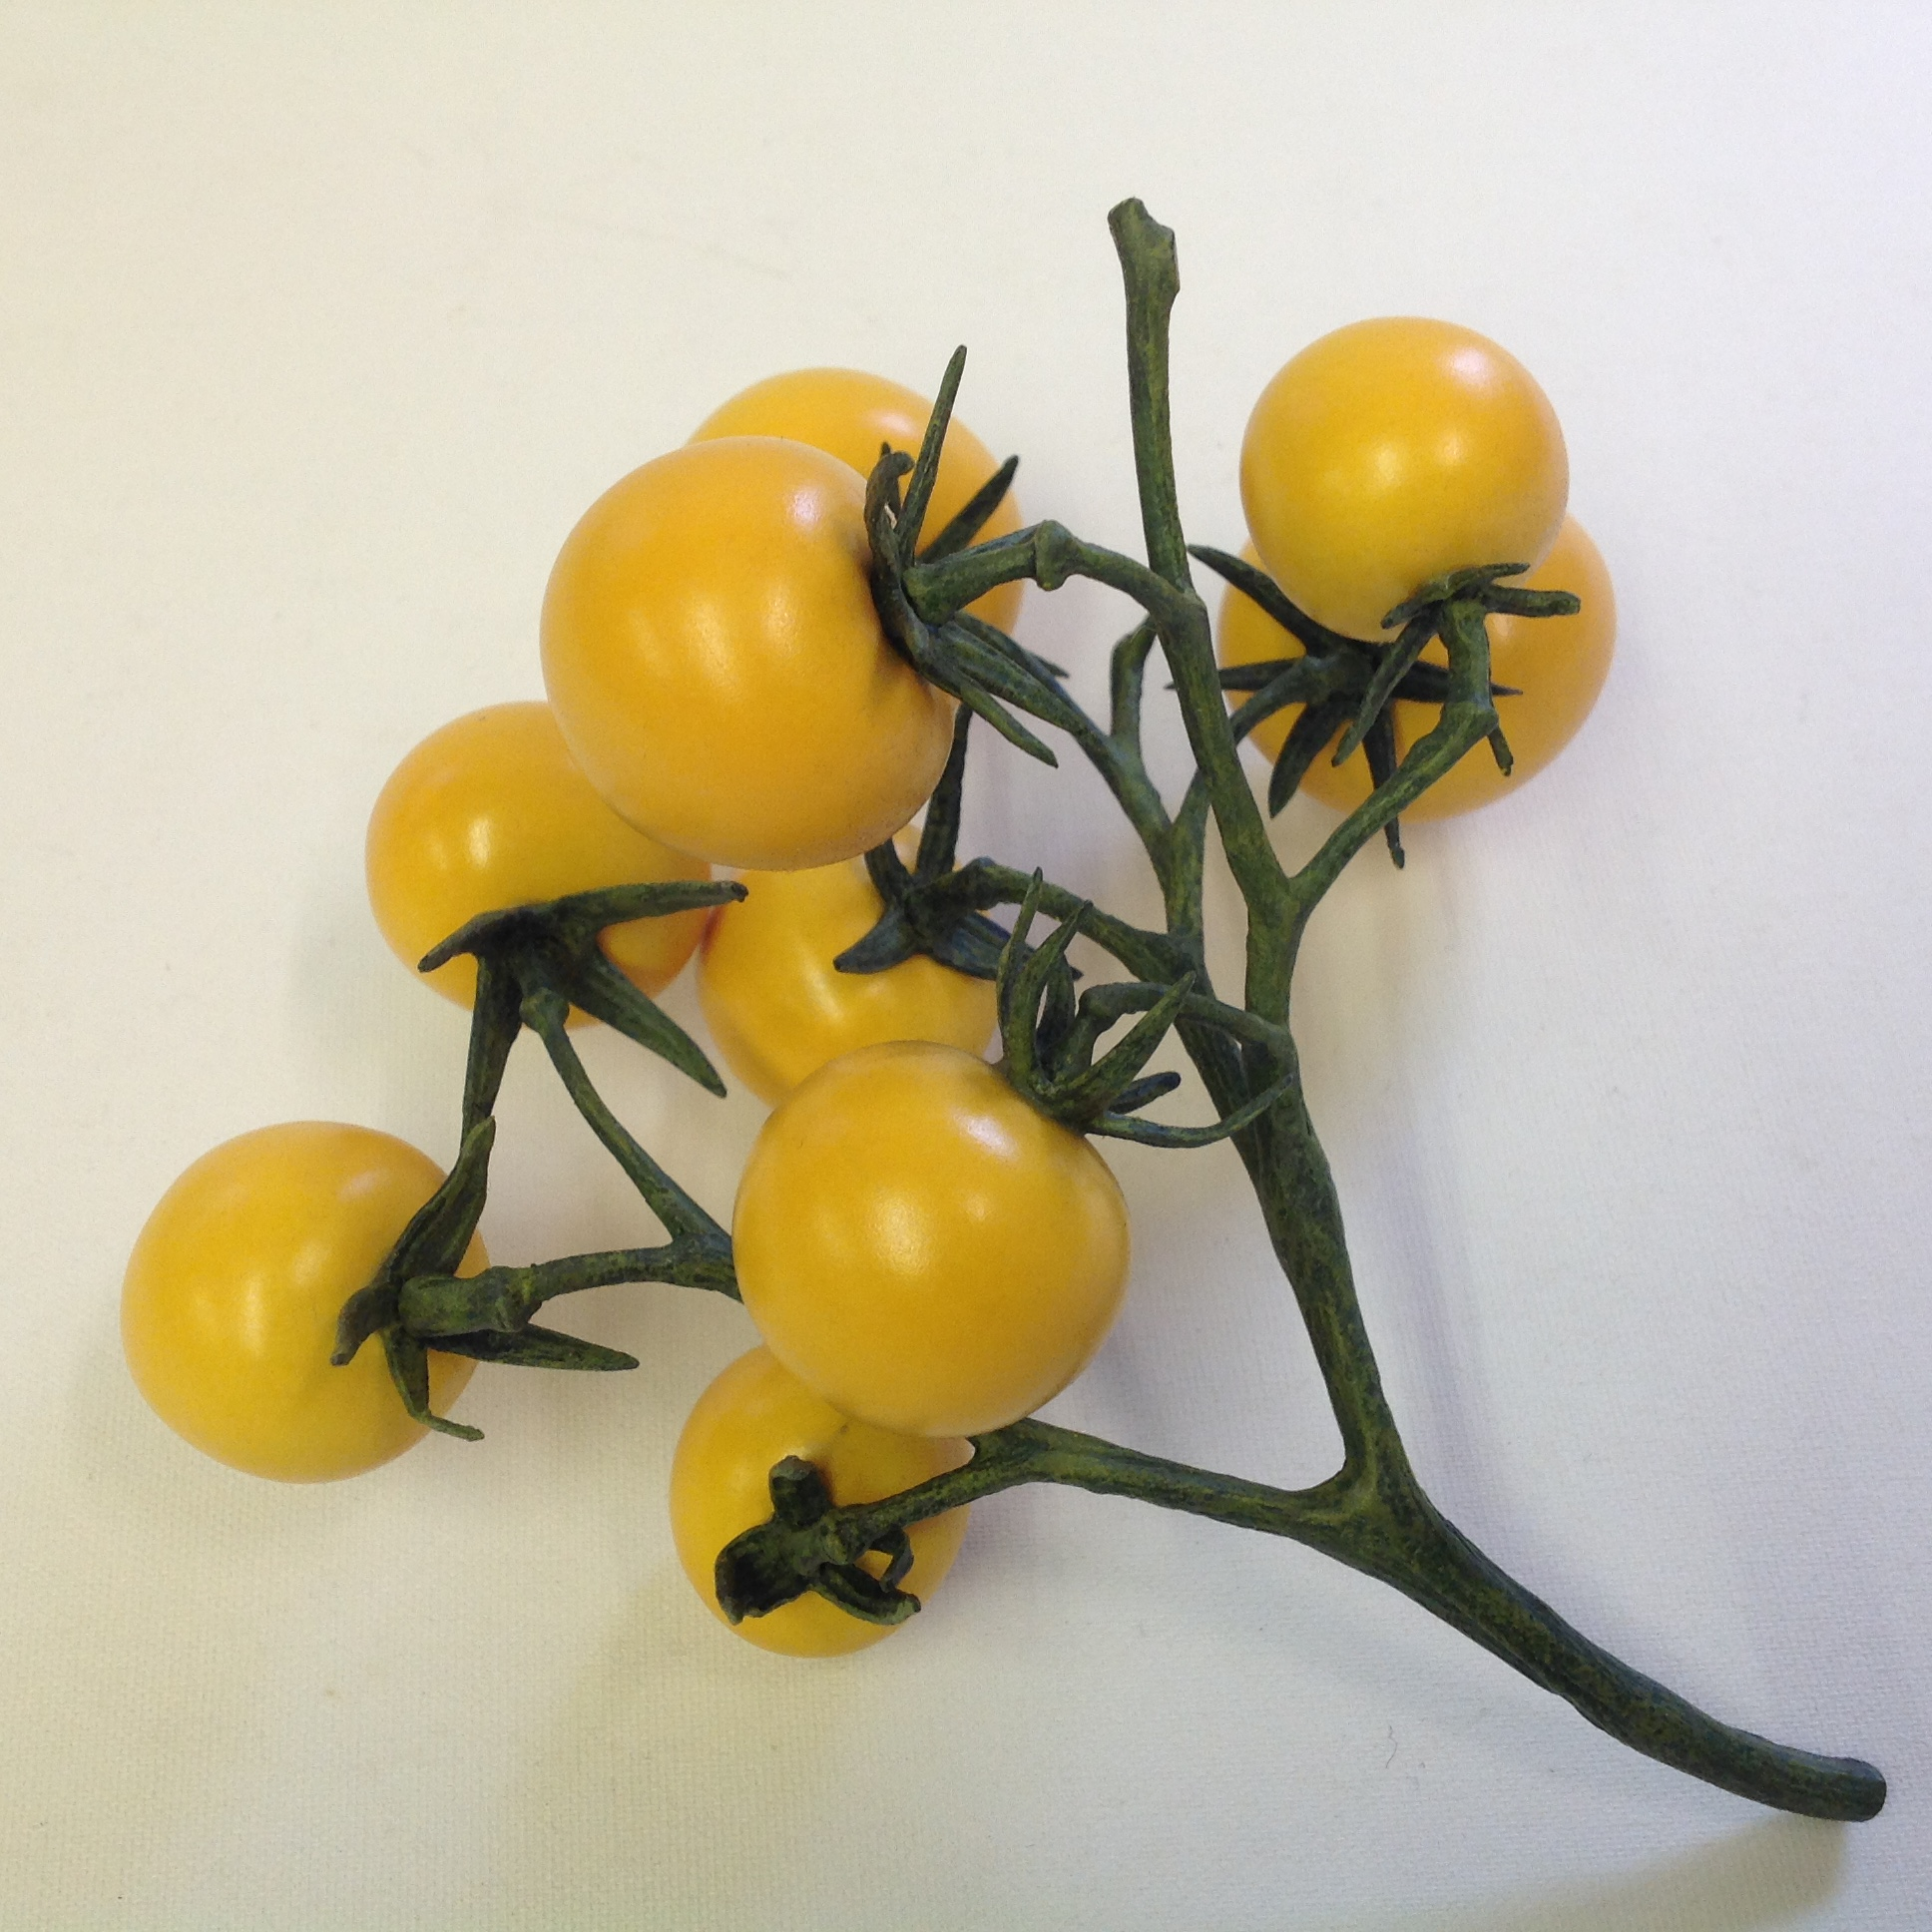 NINE CHERRY TOMATO VINE